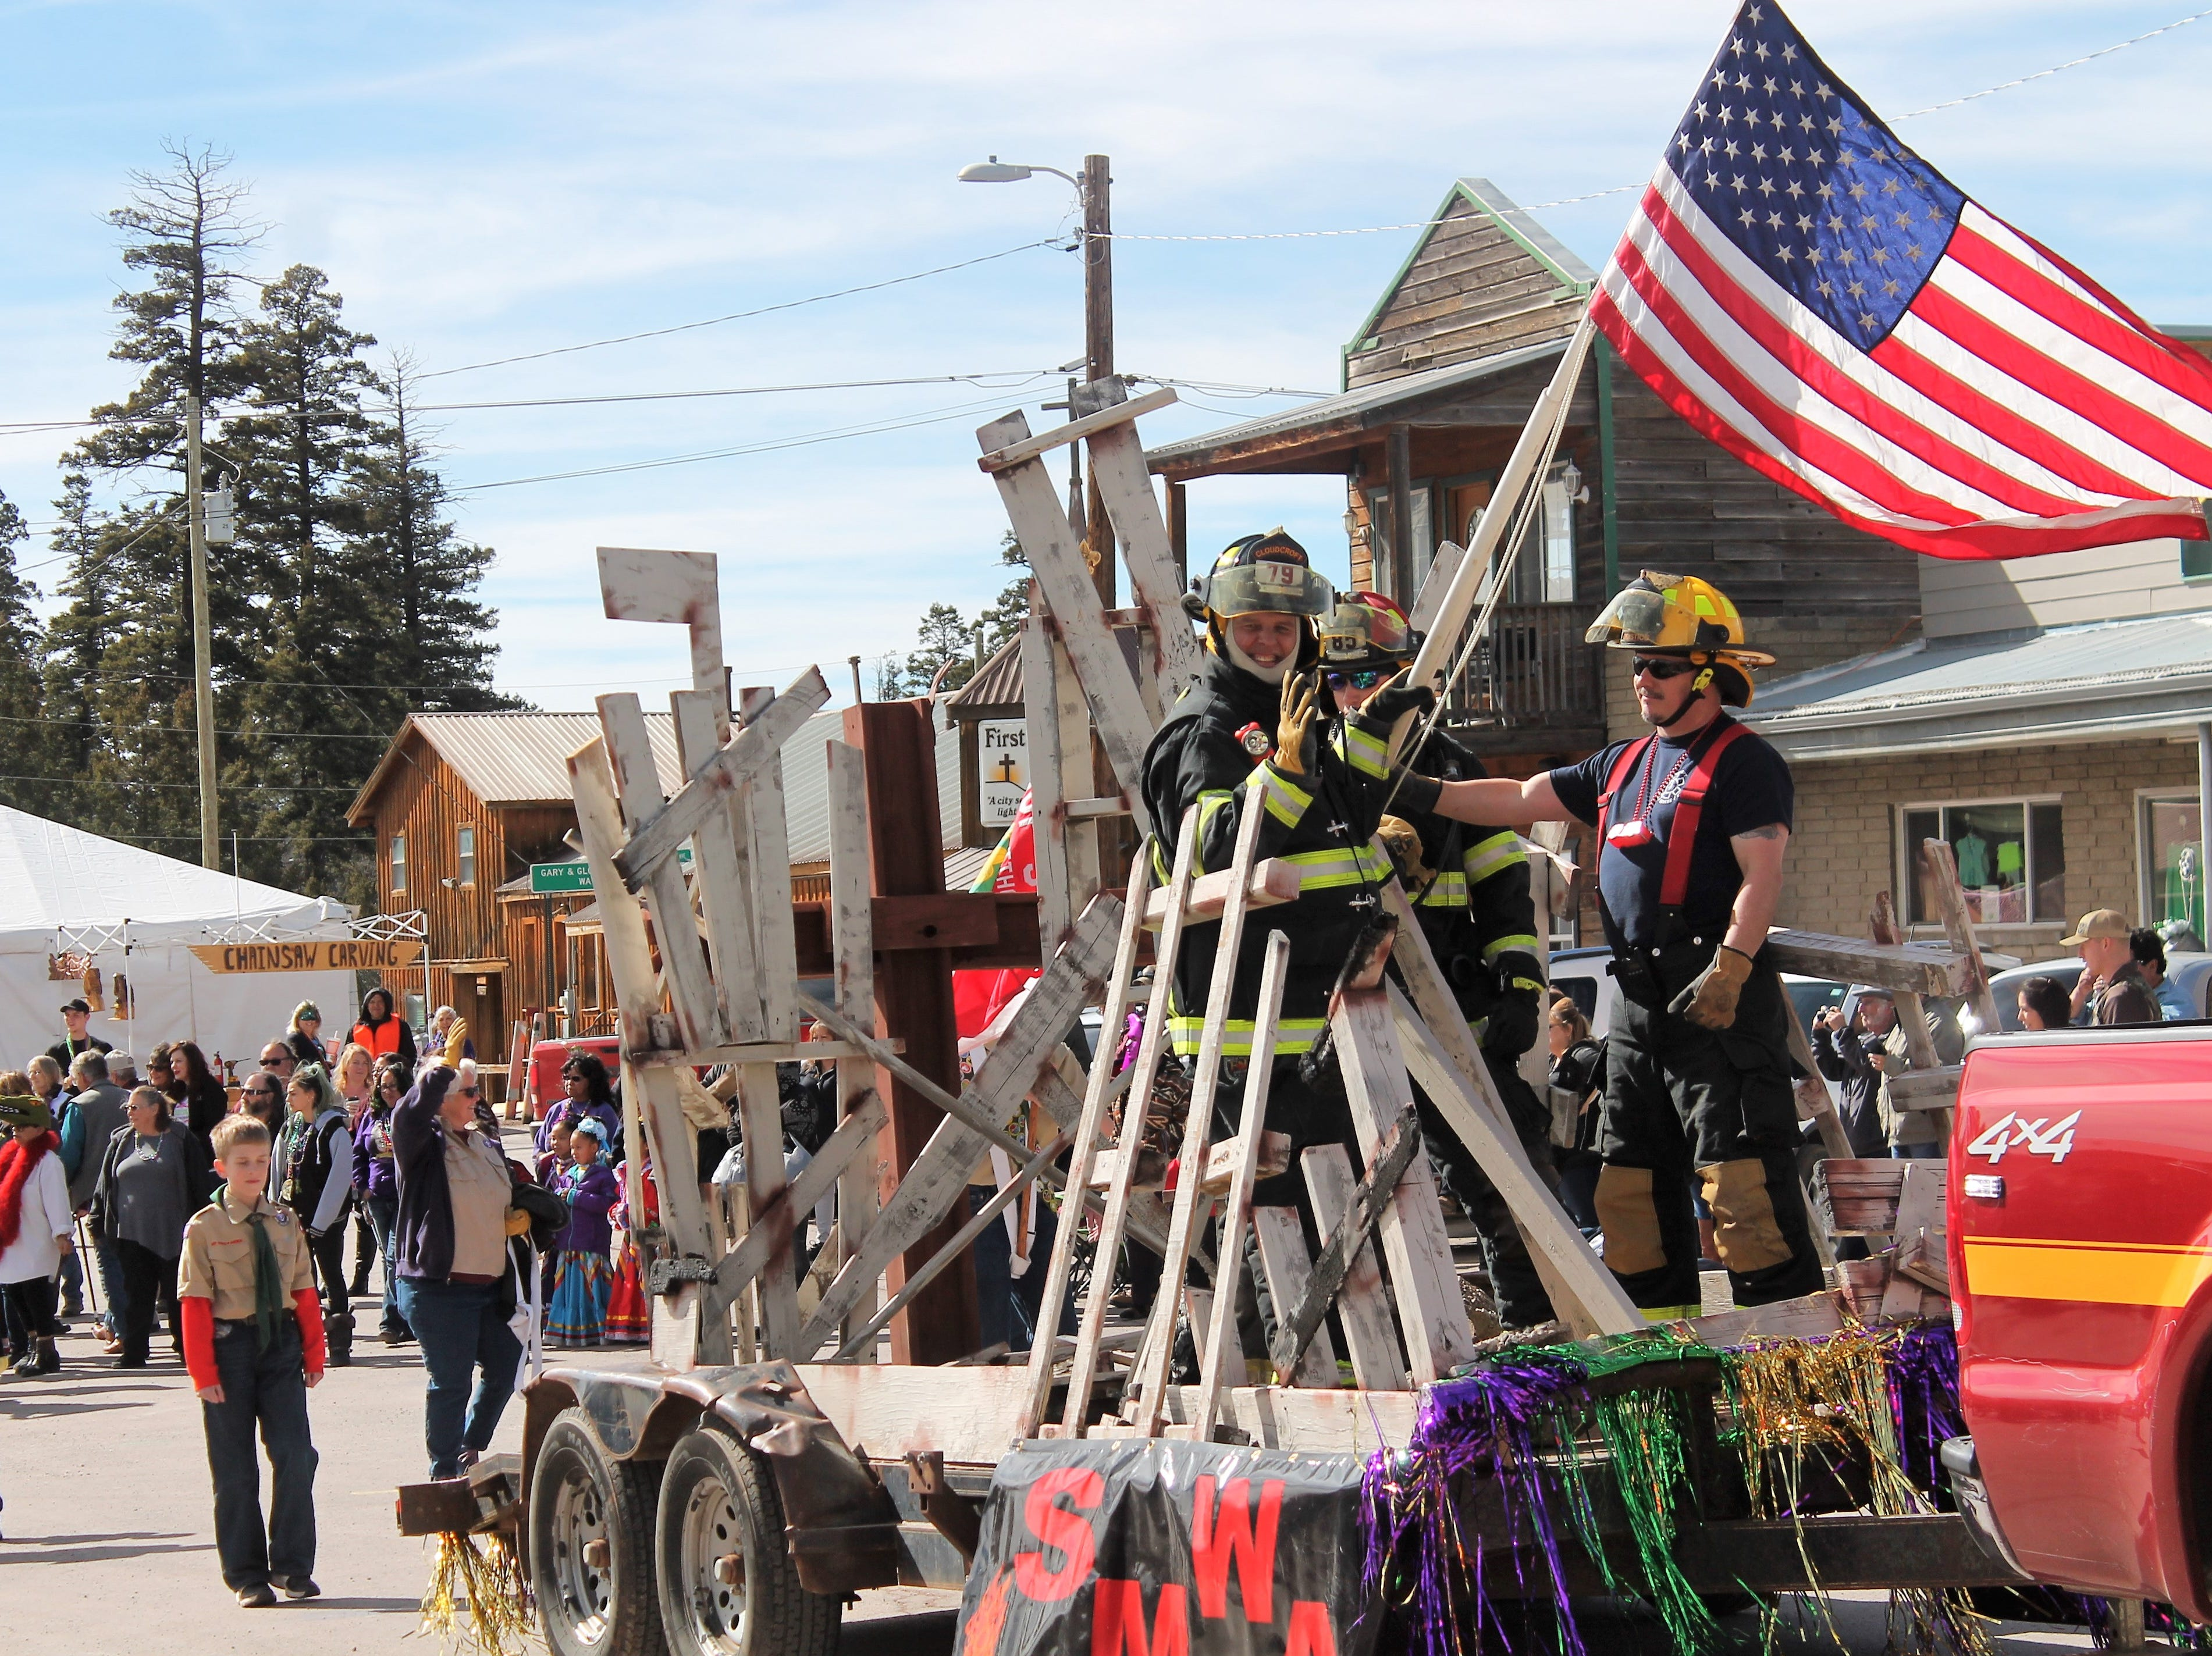 Members of the Cloudcroft Fire Department on their float at the Mardi Gras Parade in Cloudcroft Saturday.